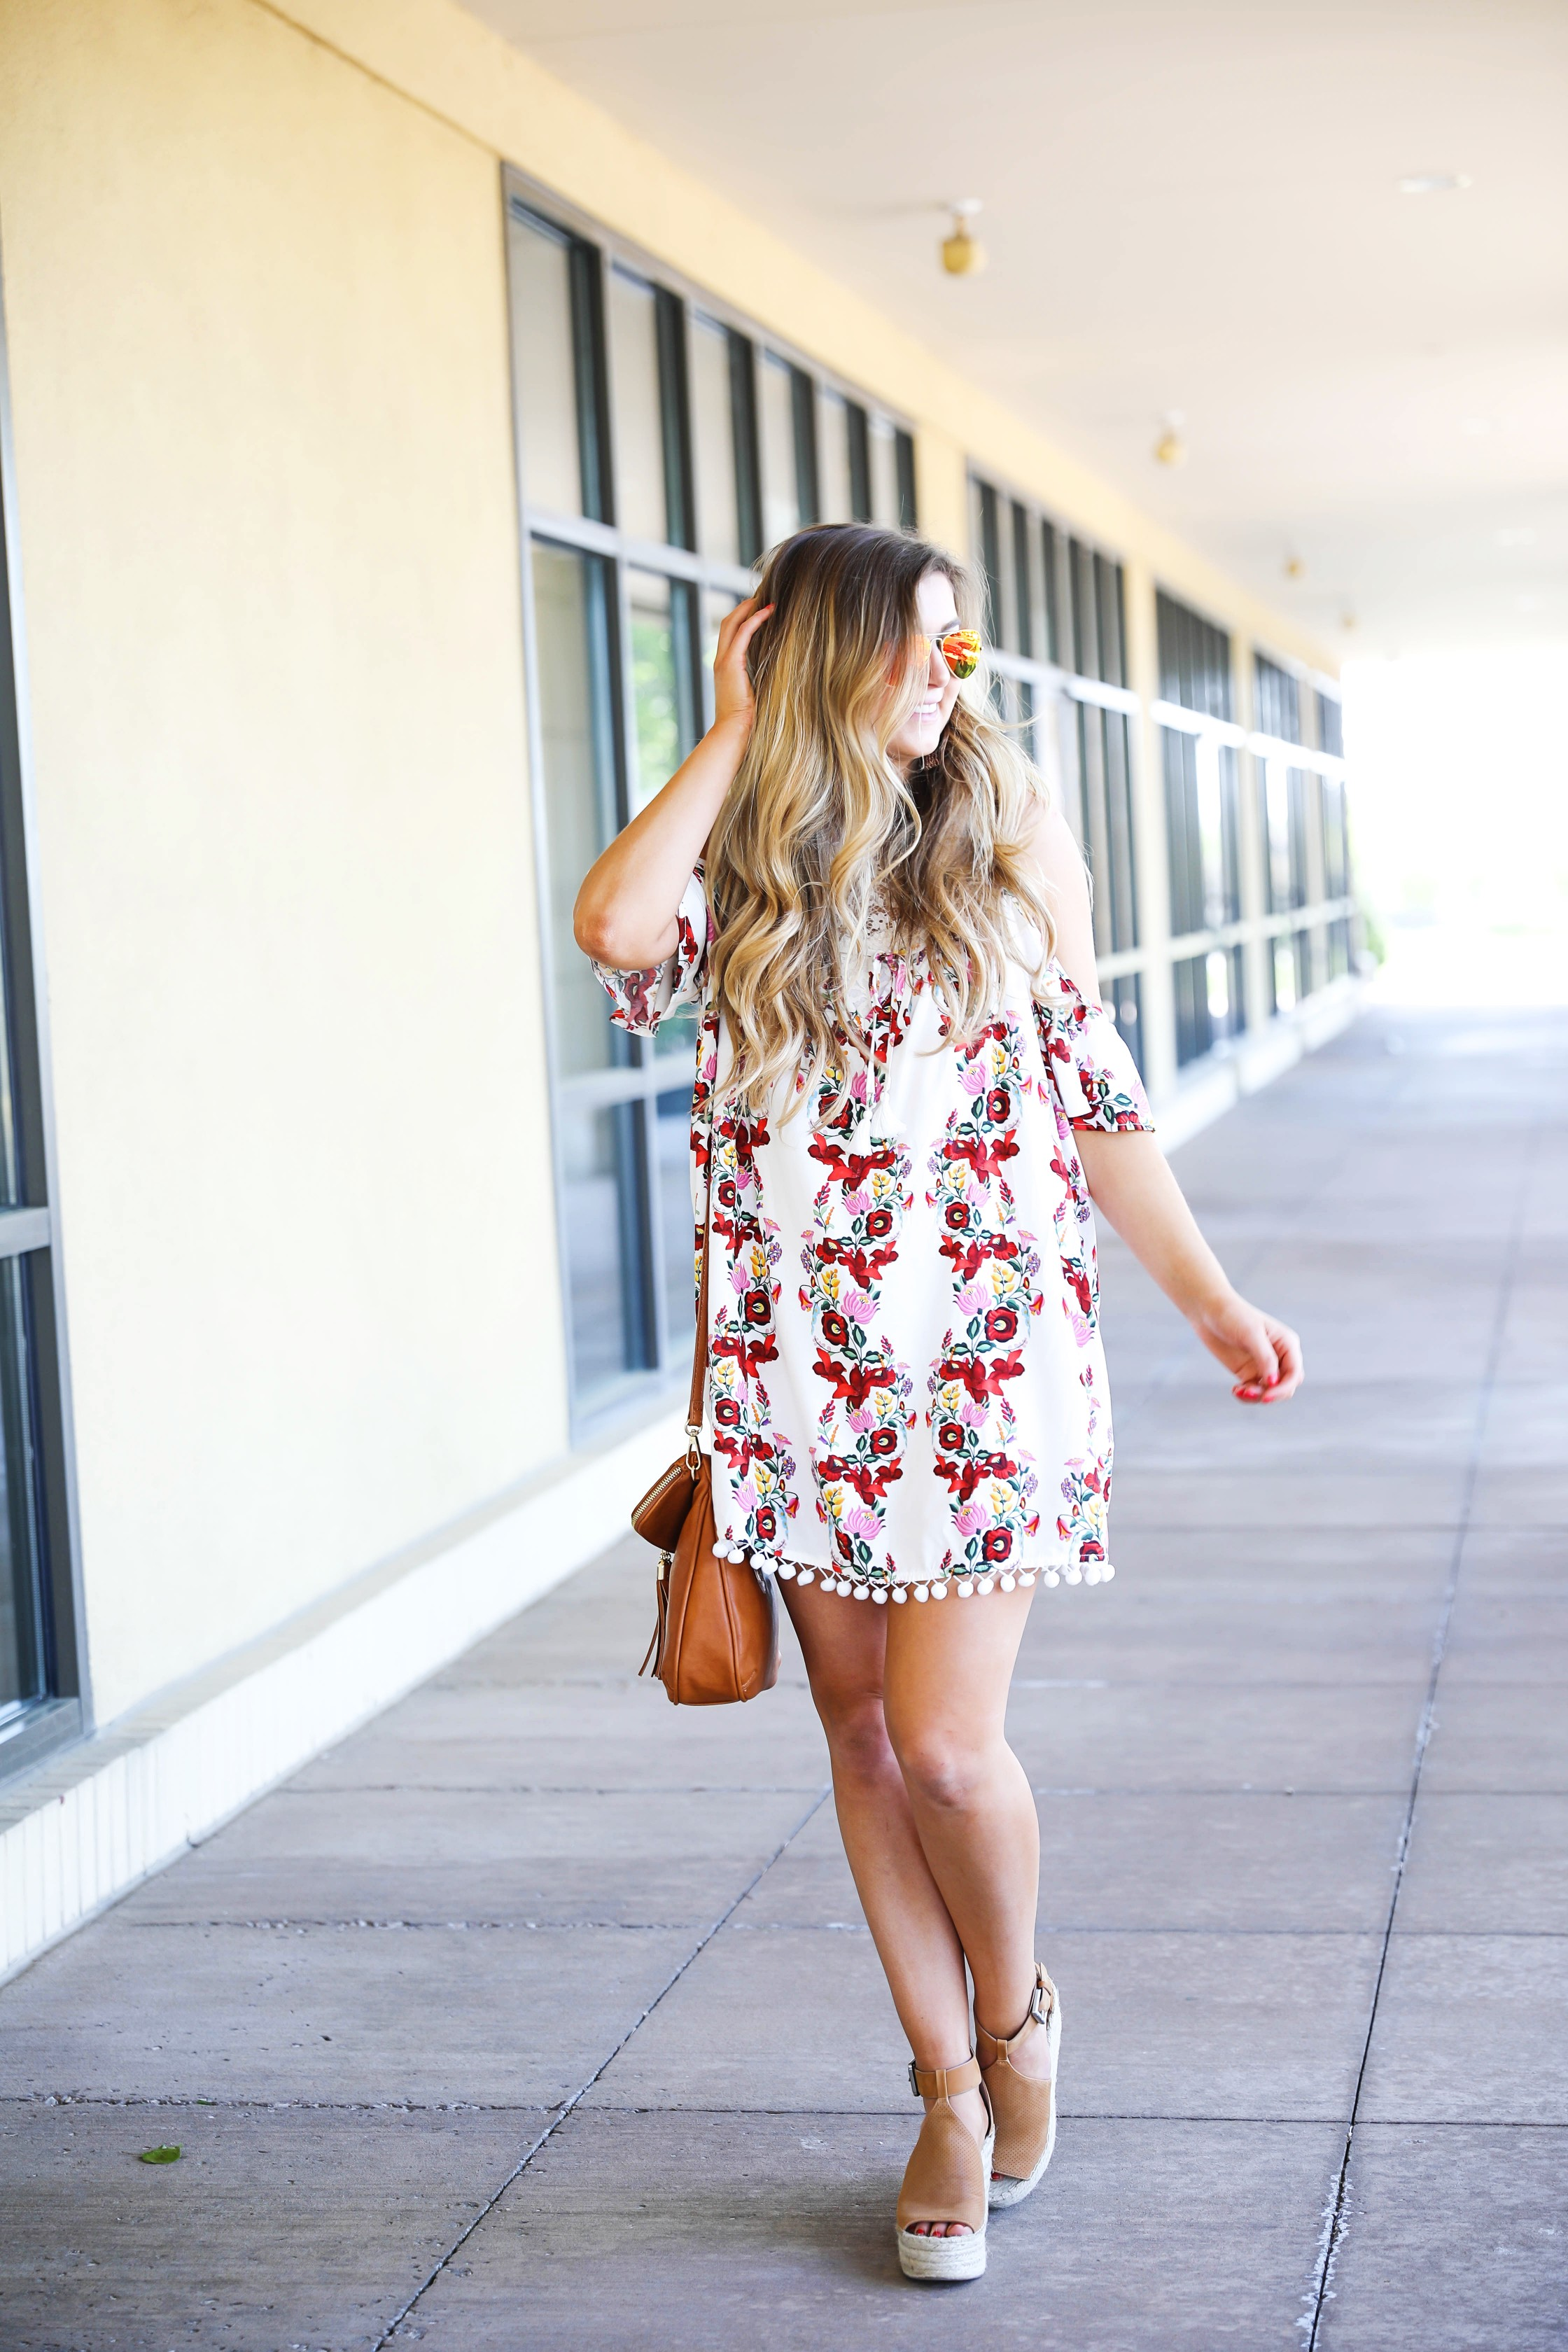 Floral MuMu Romper with lace bralette on Fashion Blog Daily Dose of Charm by Lauren Lindmark